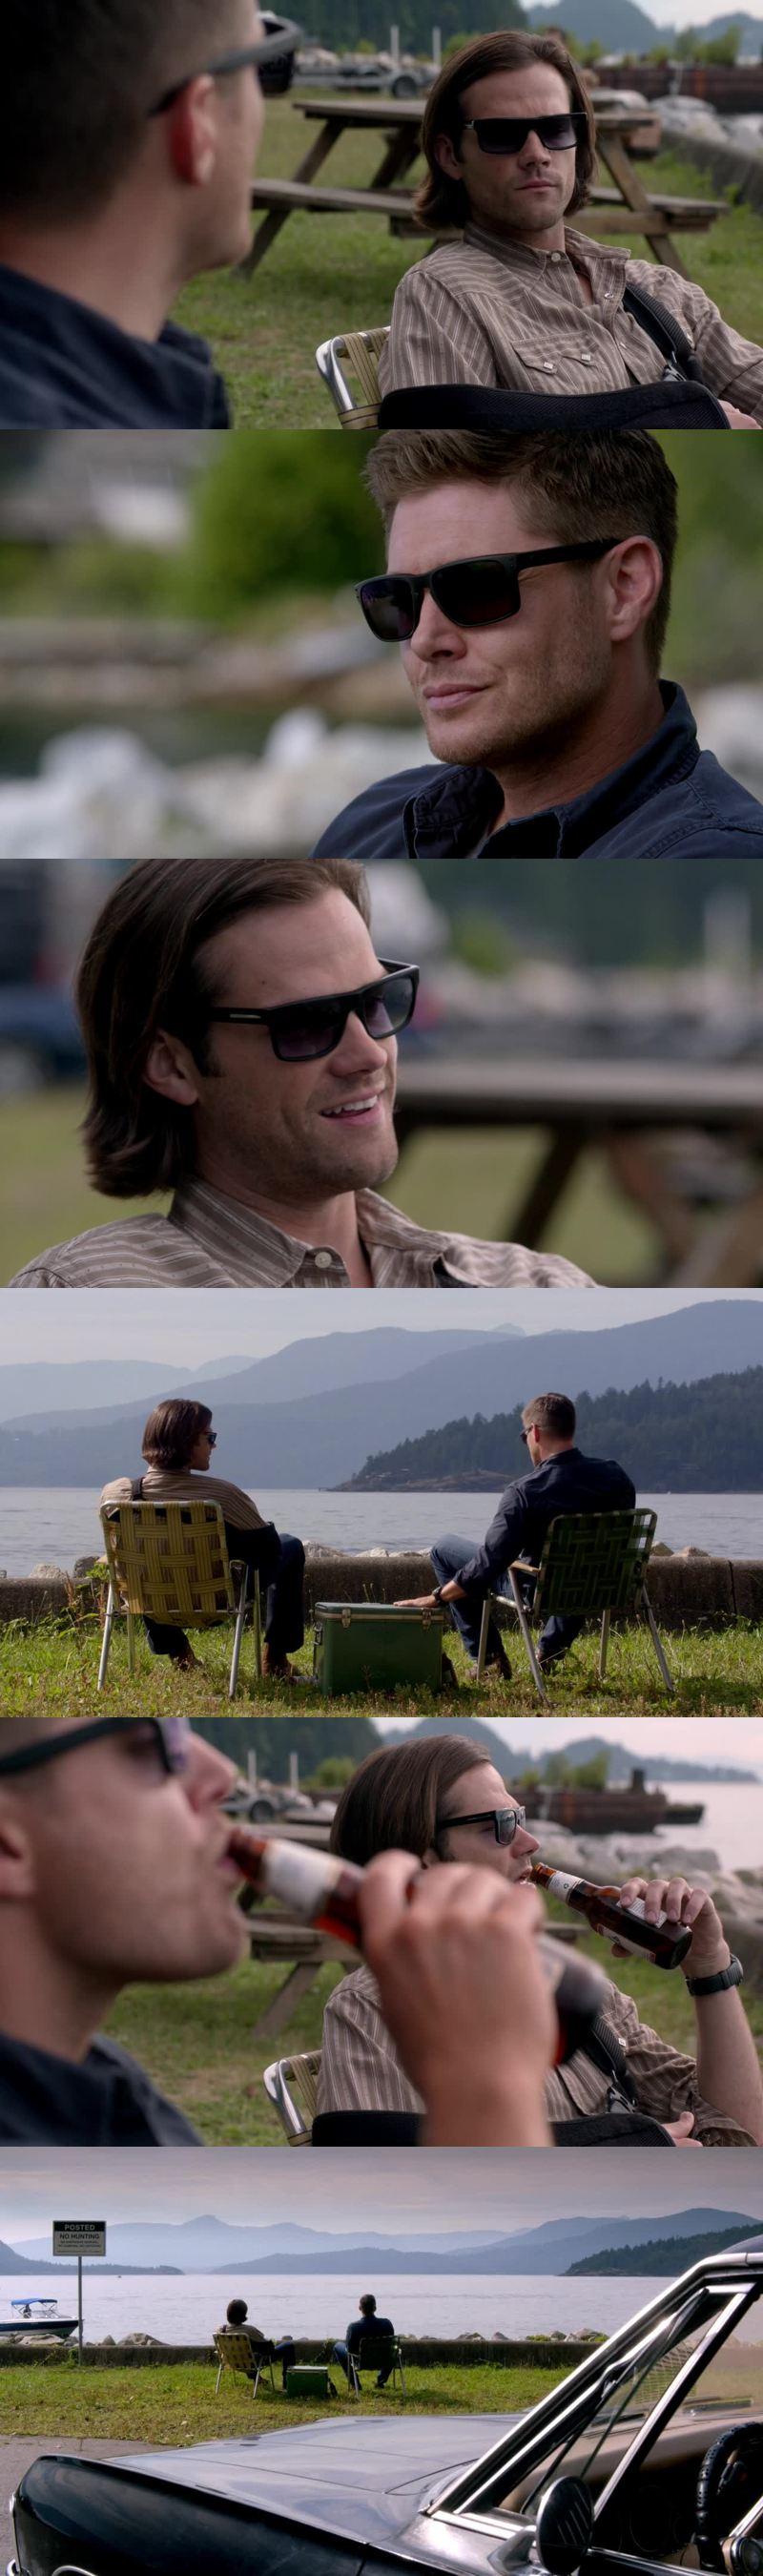 Why do i see the winchesters taking a break and relaxing a weird thing?